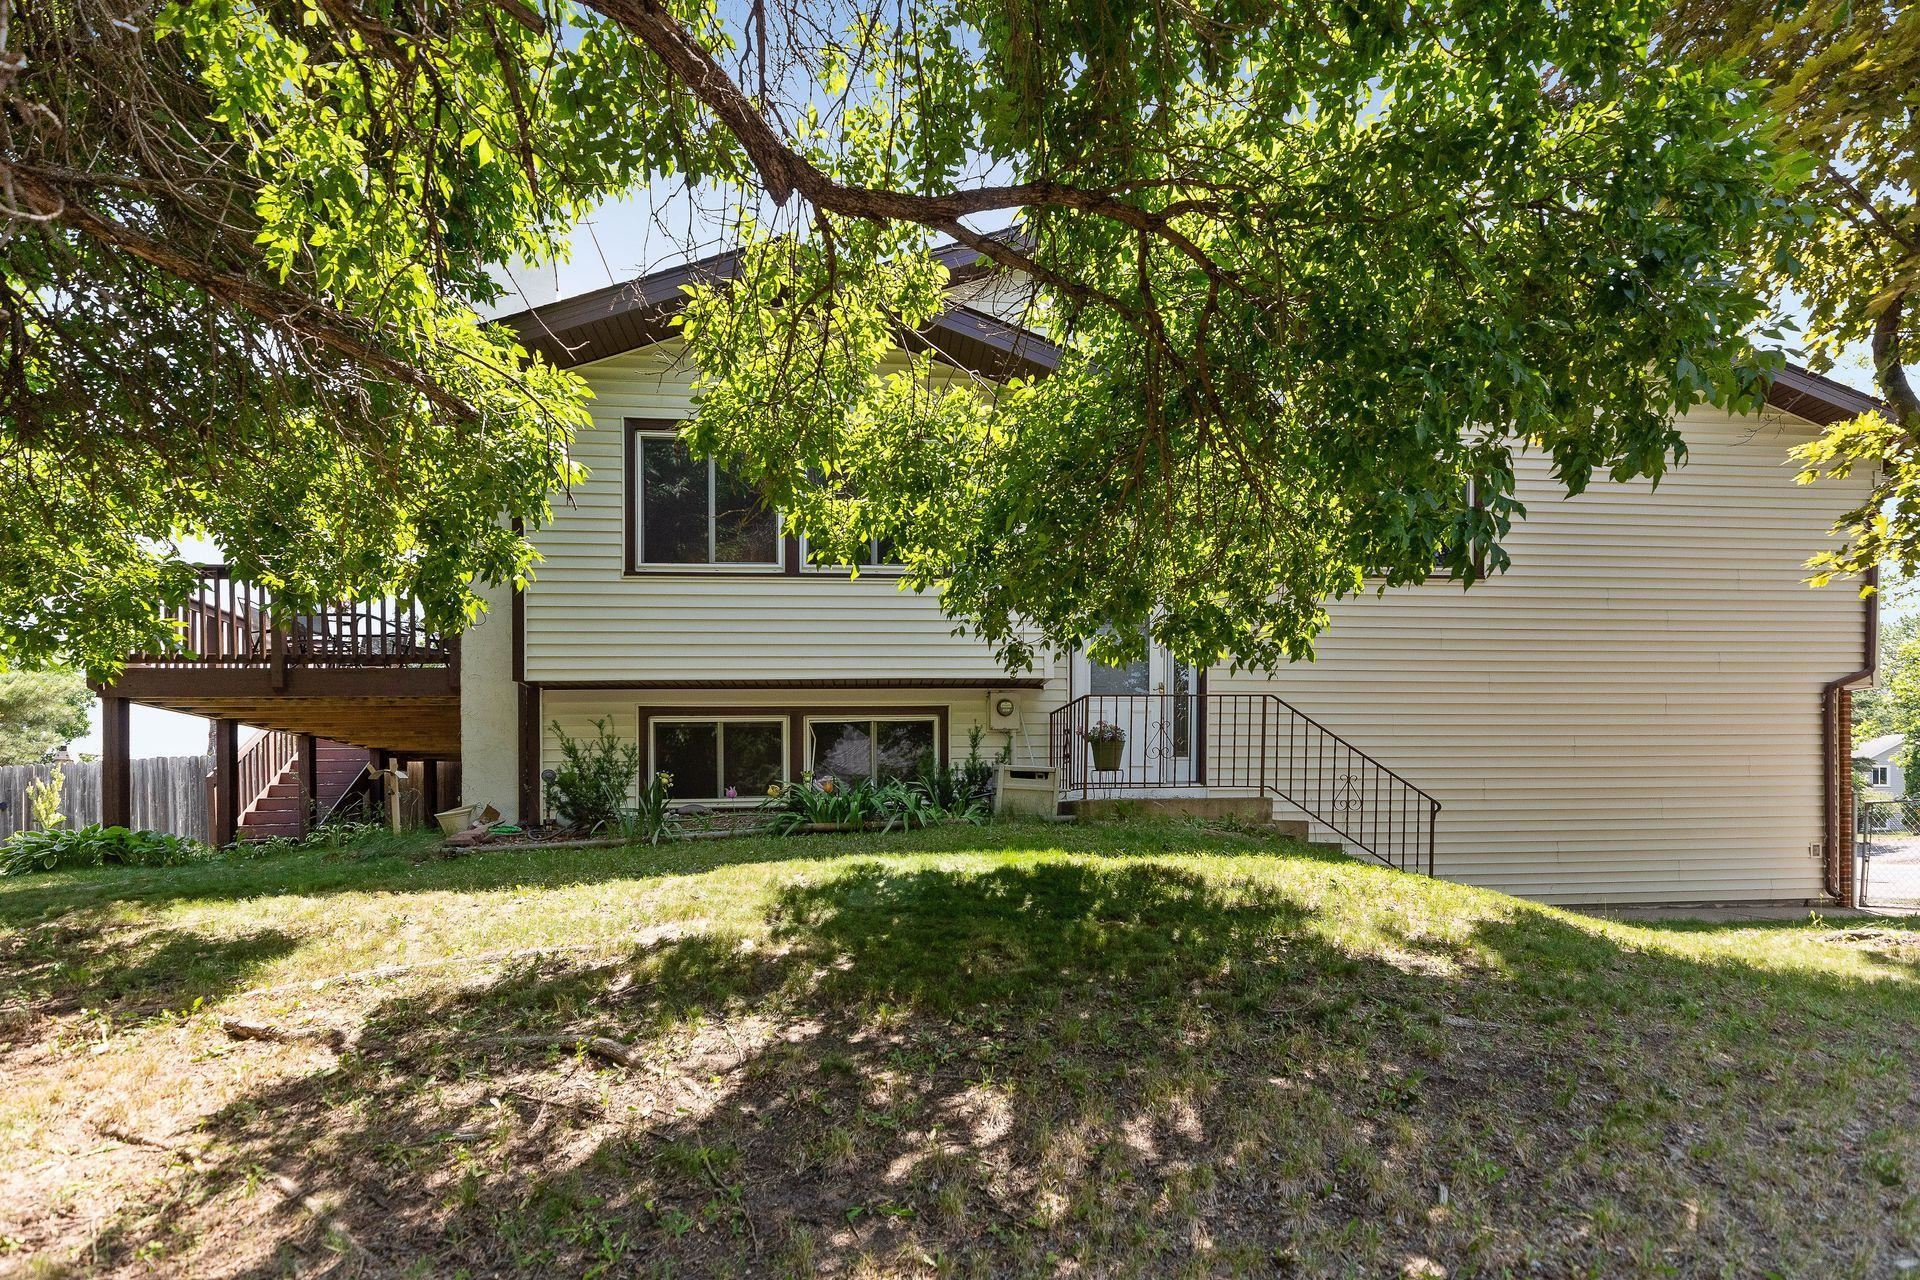 3375 117th Avenue NW, Coon Rapids, MN 55433 - MLS#: 5579850